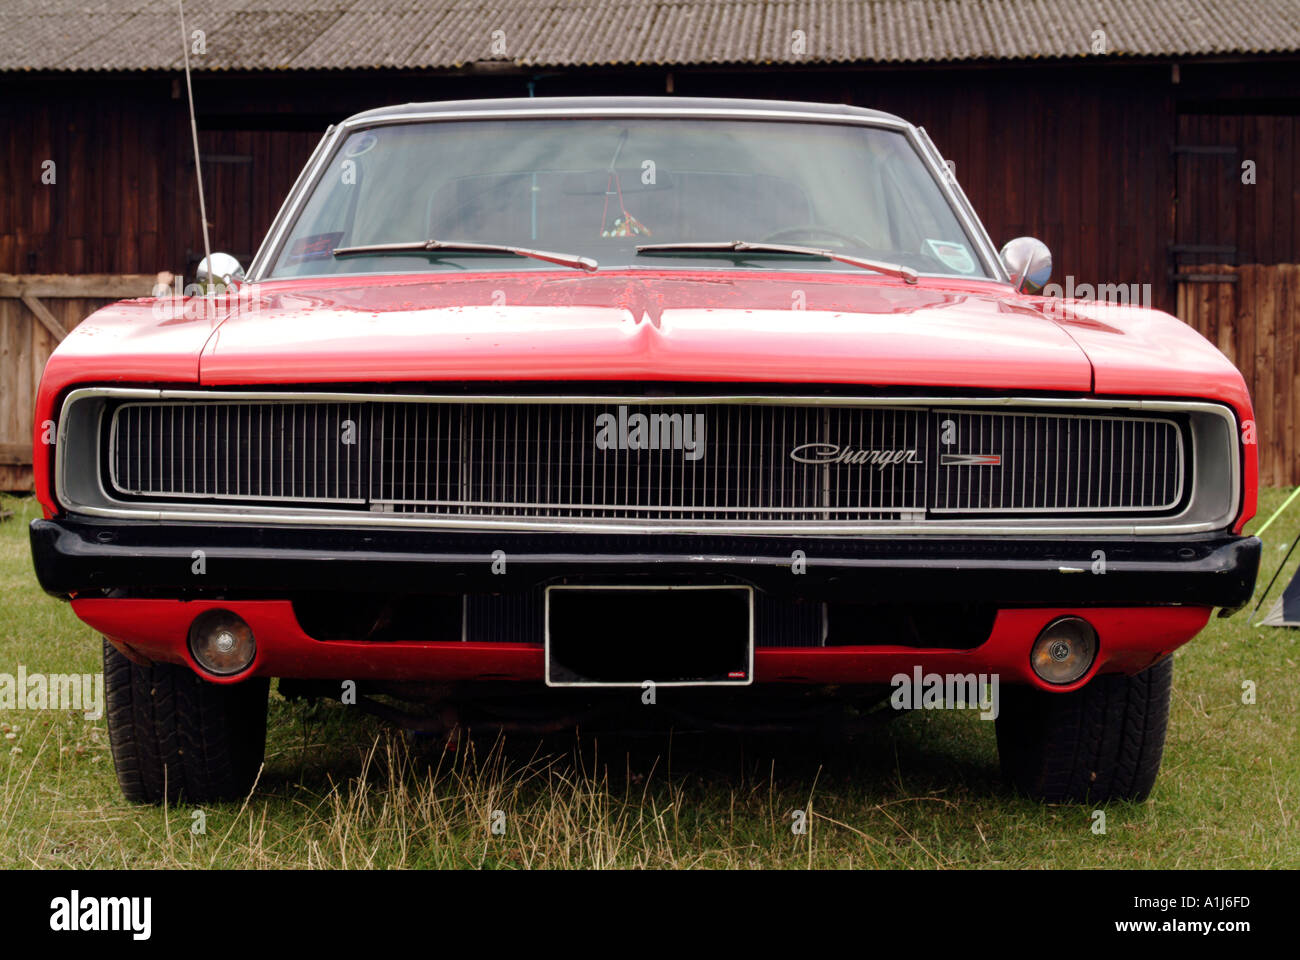 1968 dodge charger muscle car classic car american america us usa ...